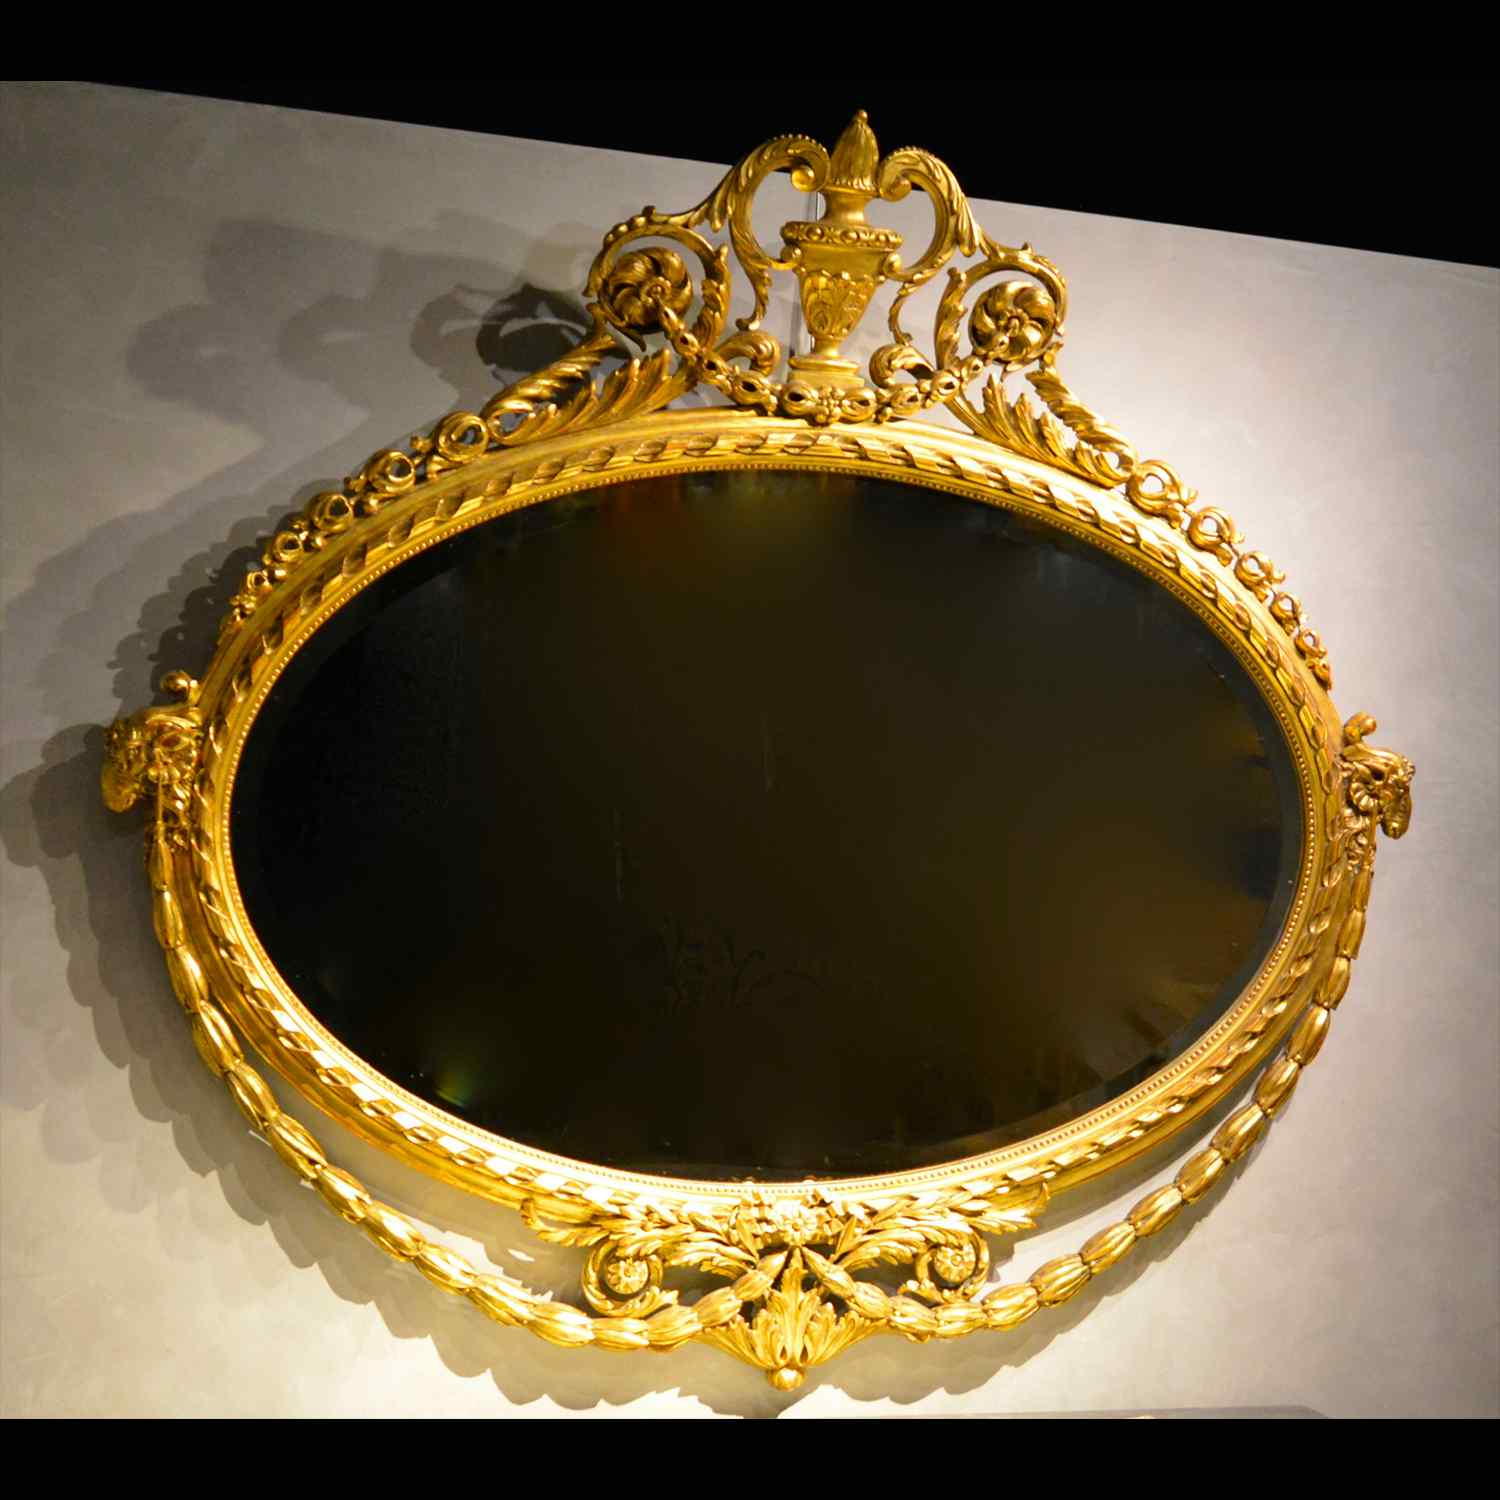 Ancient mirror in carved and gilded wood